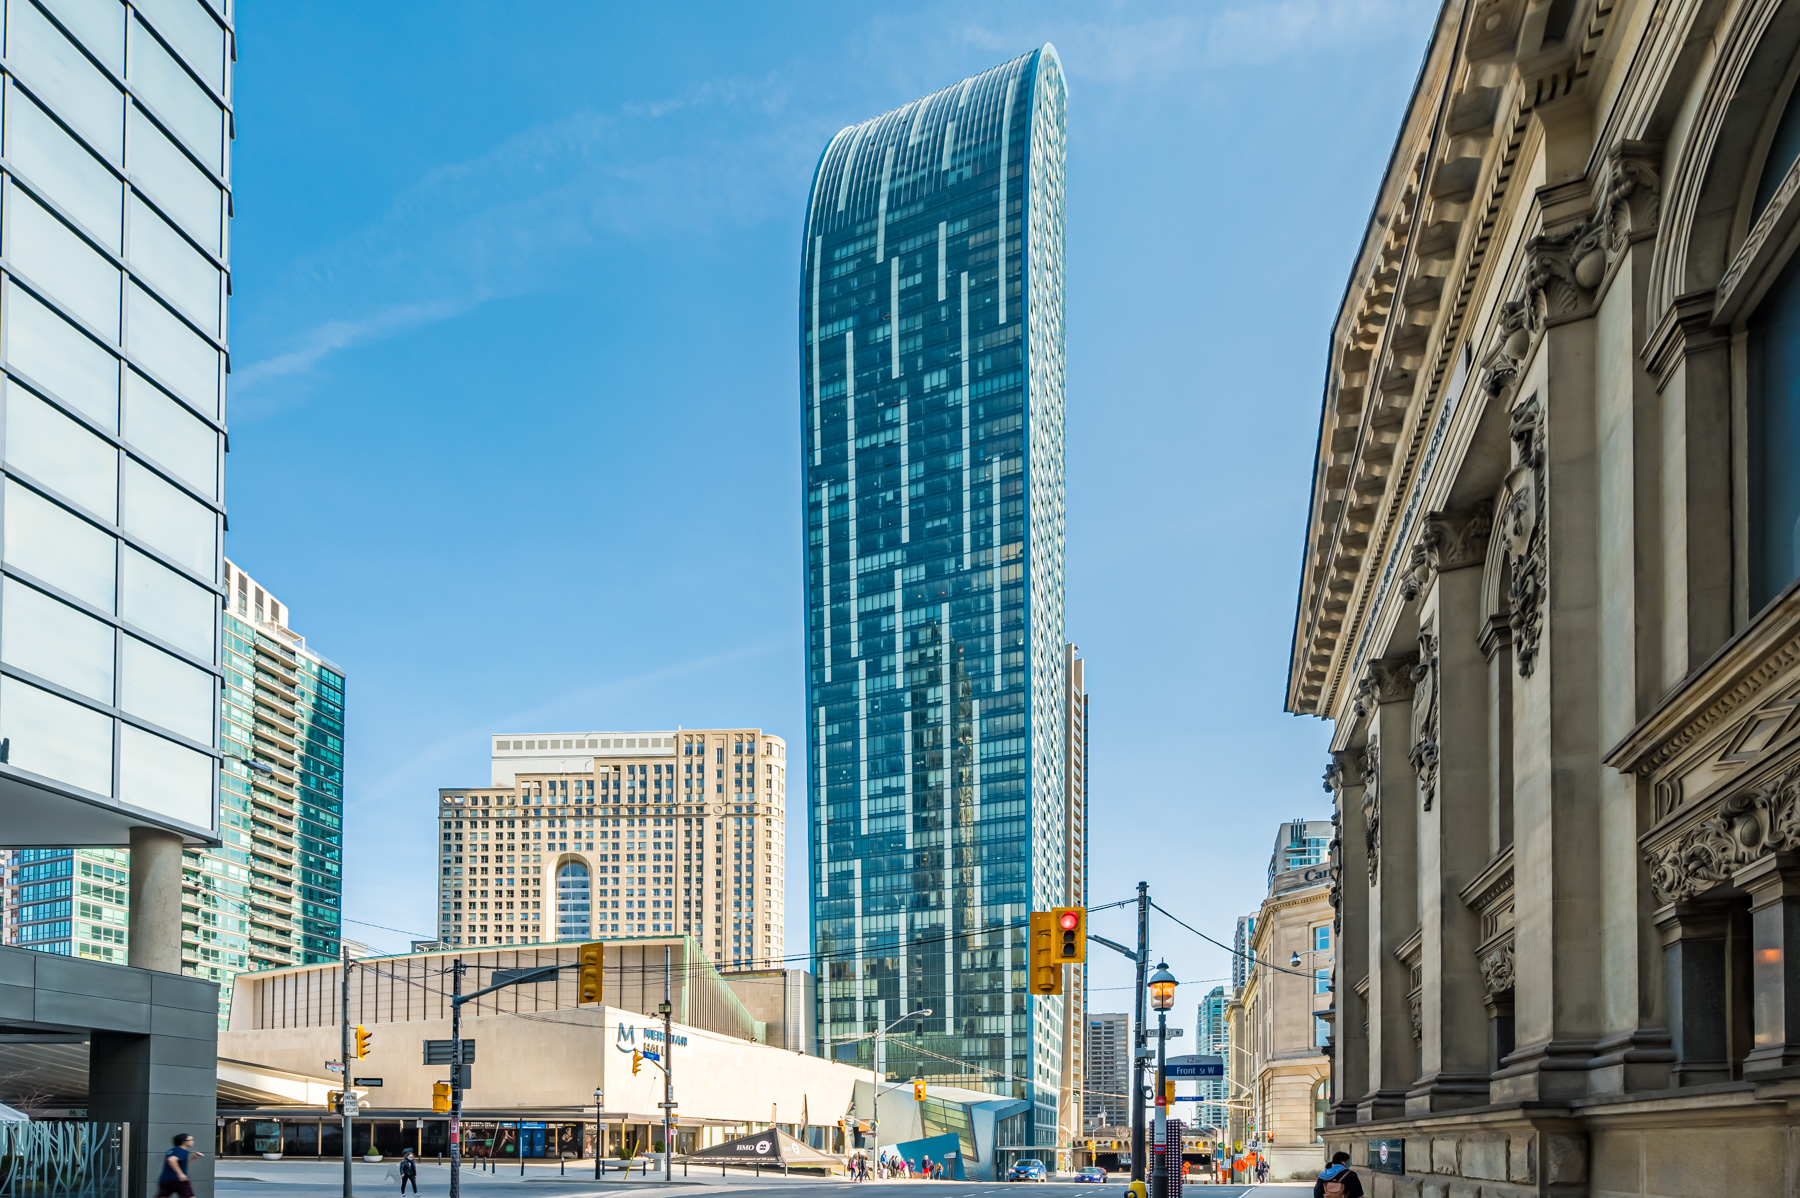 Long distance photo of L Condos, a blue glass tower.